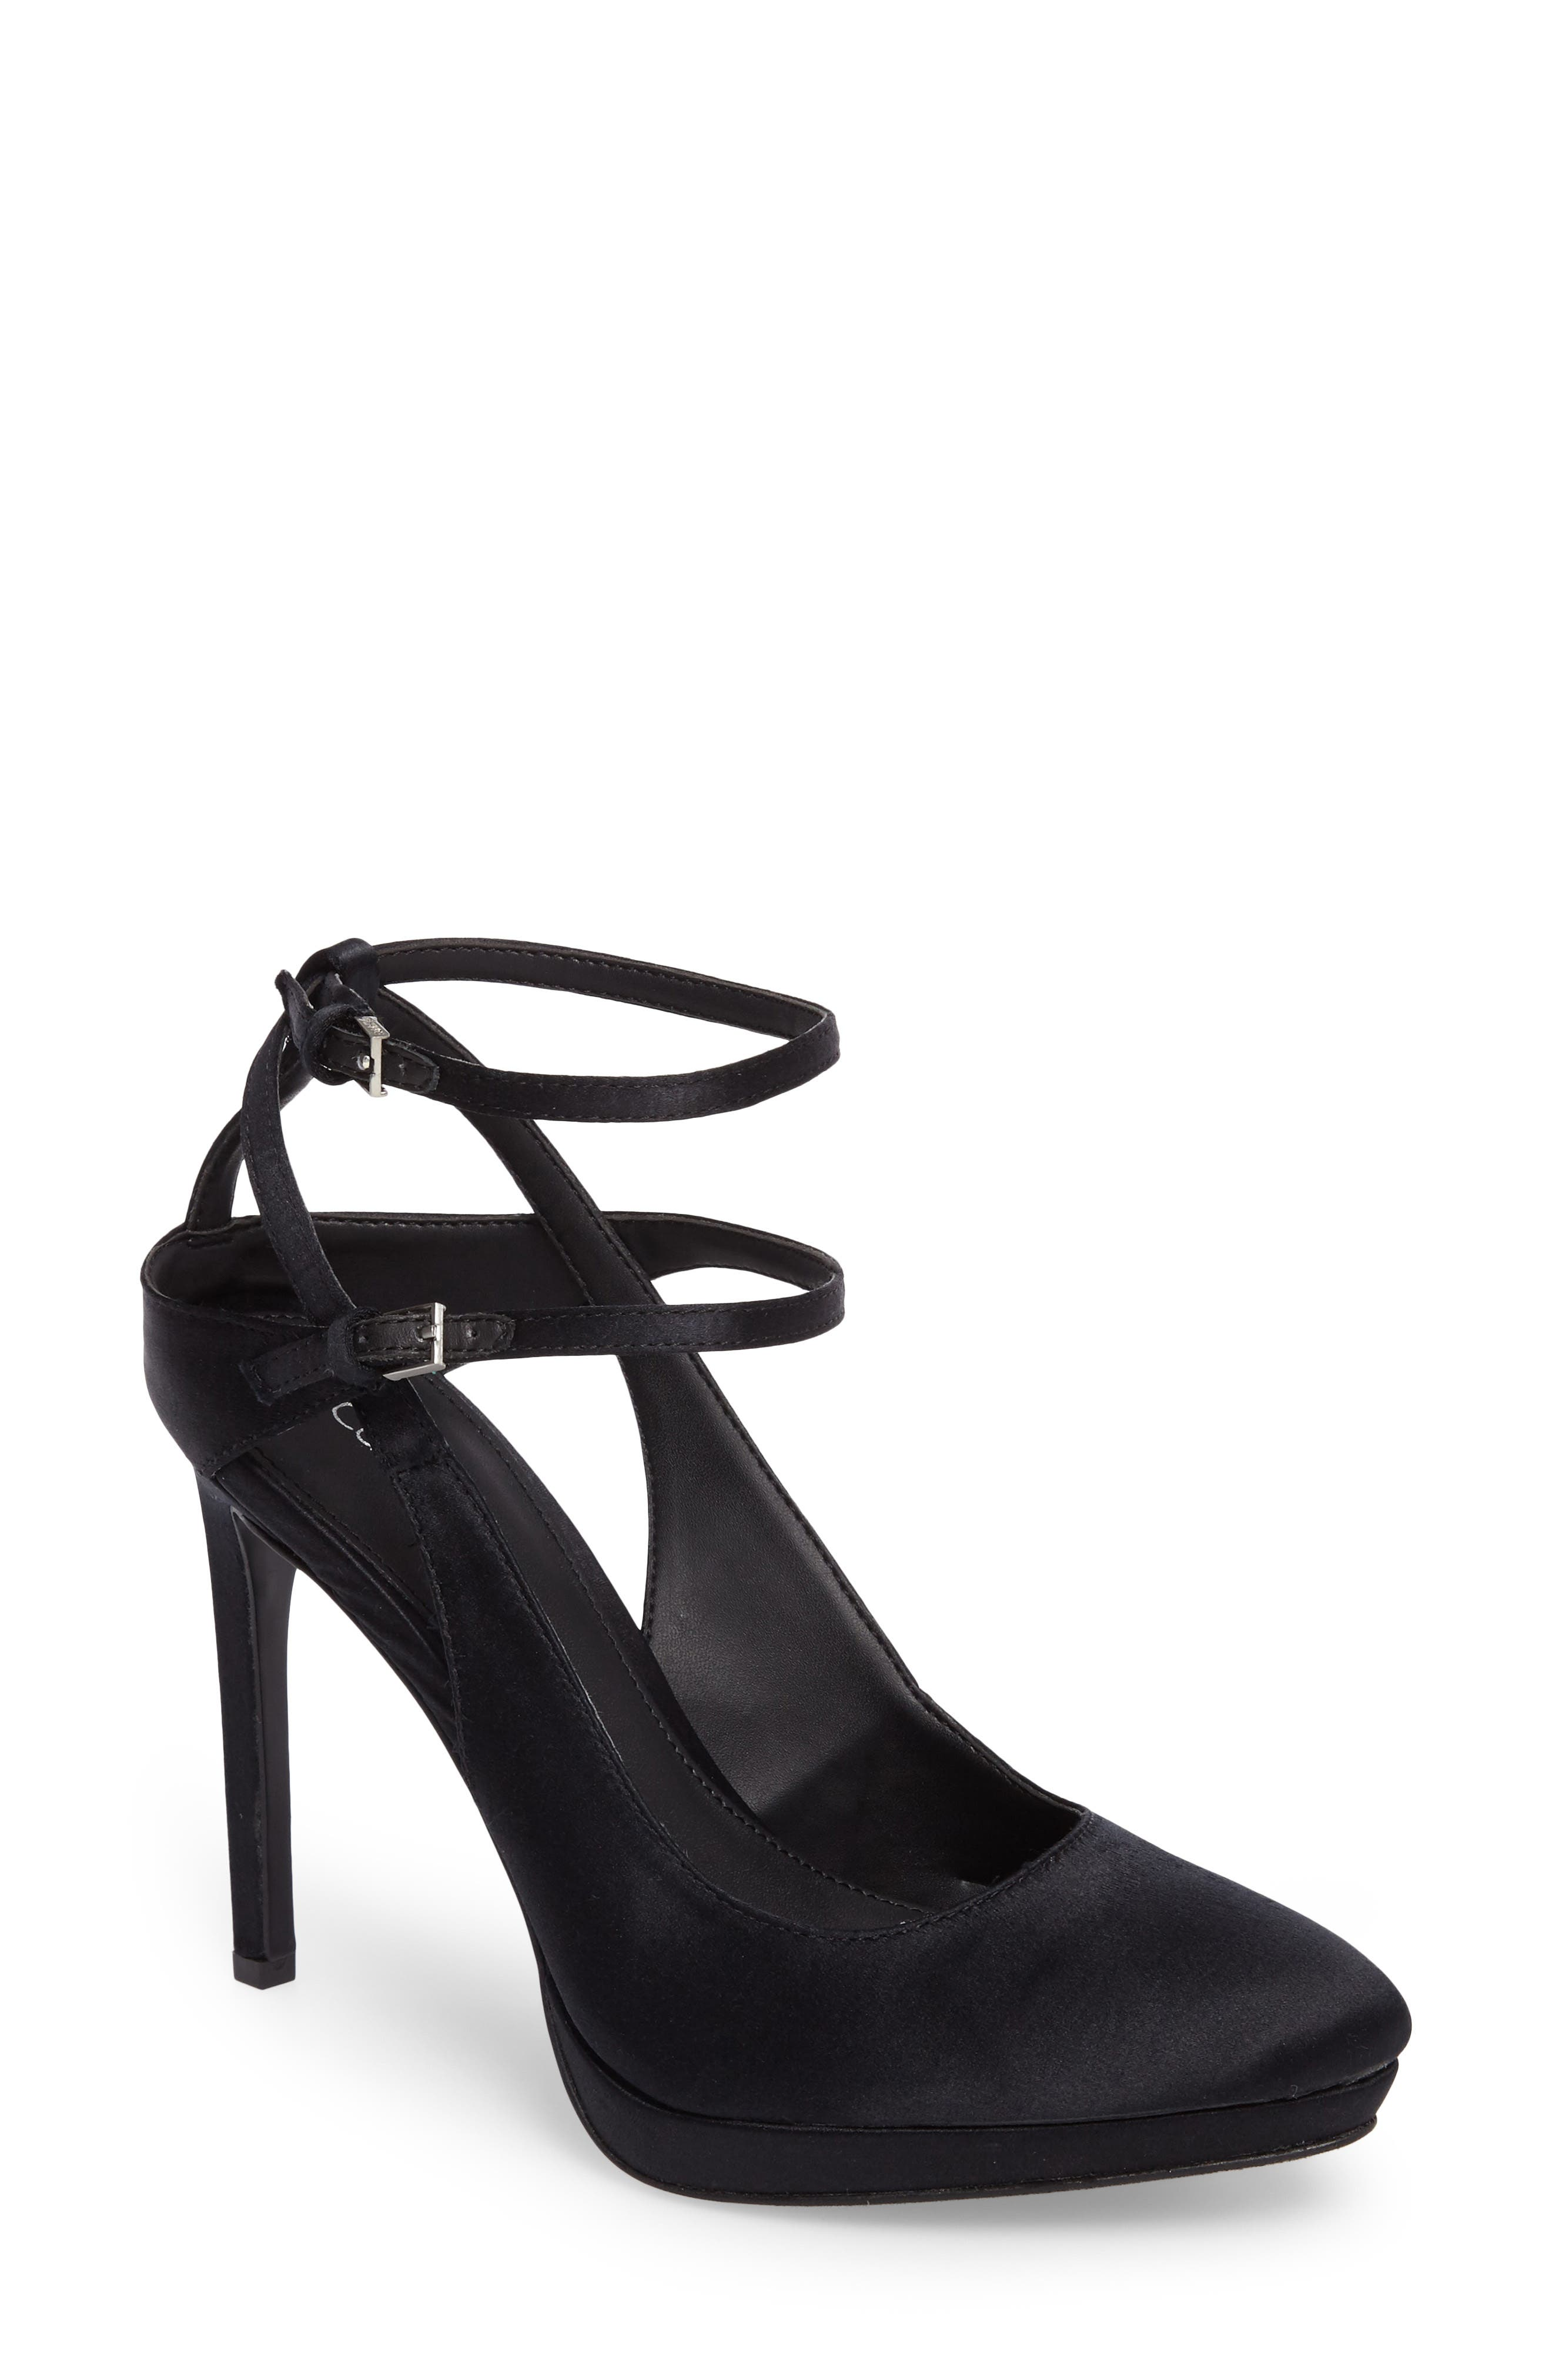 Alternate Image 1 Selected - Calvin Klein Shawna Strappy Pump (Women)